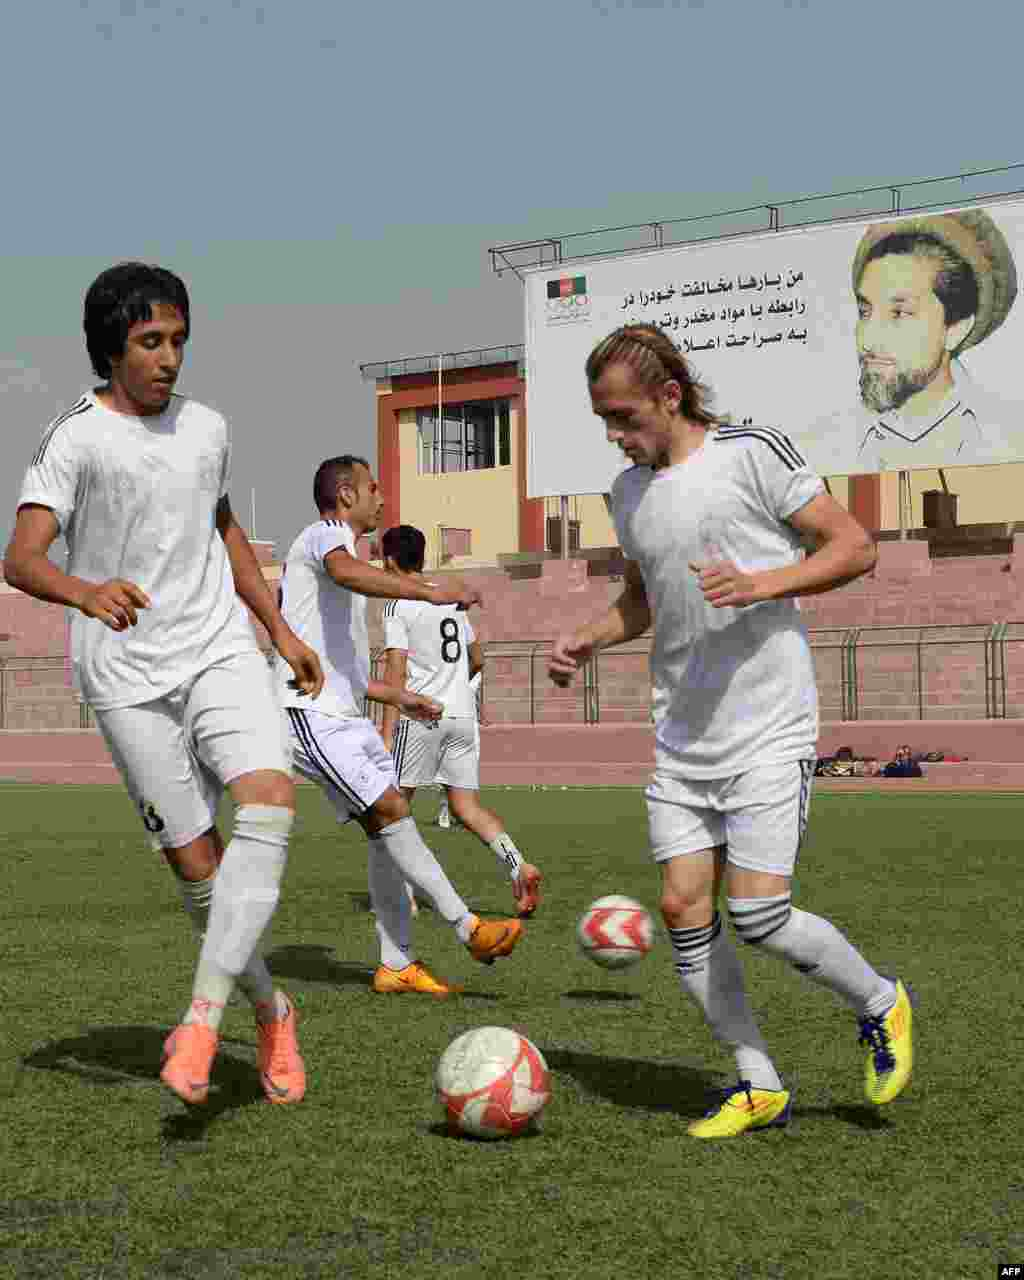 Afghan football players training in Kabul with a poster of legendary Afghan commander Ahmad Shah Masud in the background.